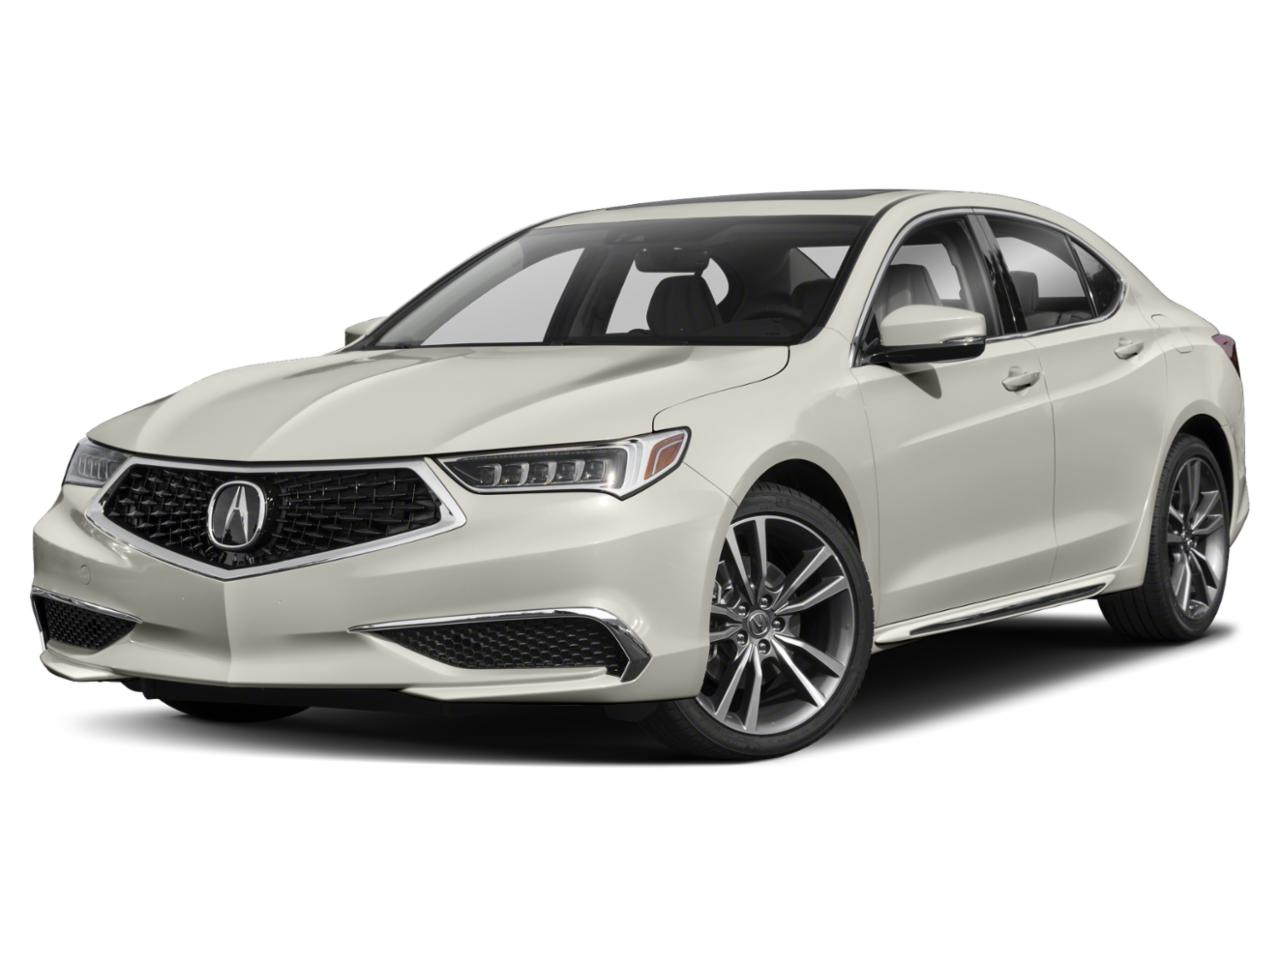 2020 Acura TLX Vehicle Photo in Grapevine, TX 76051